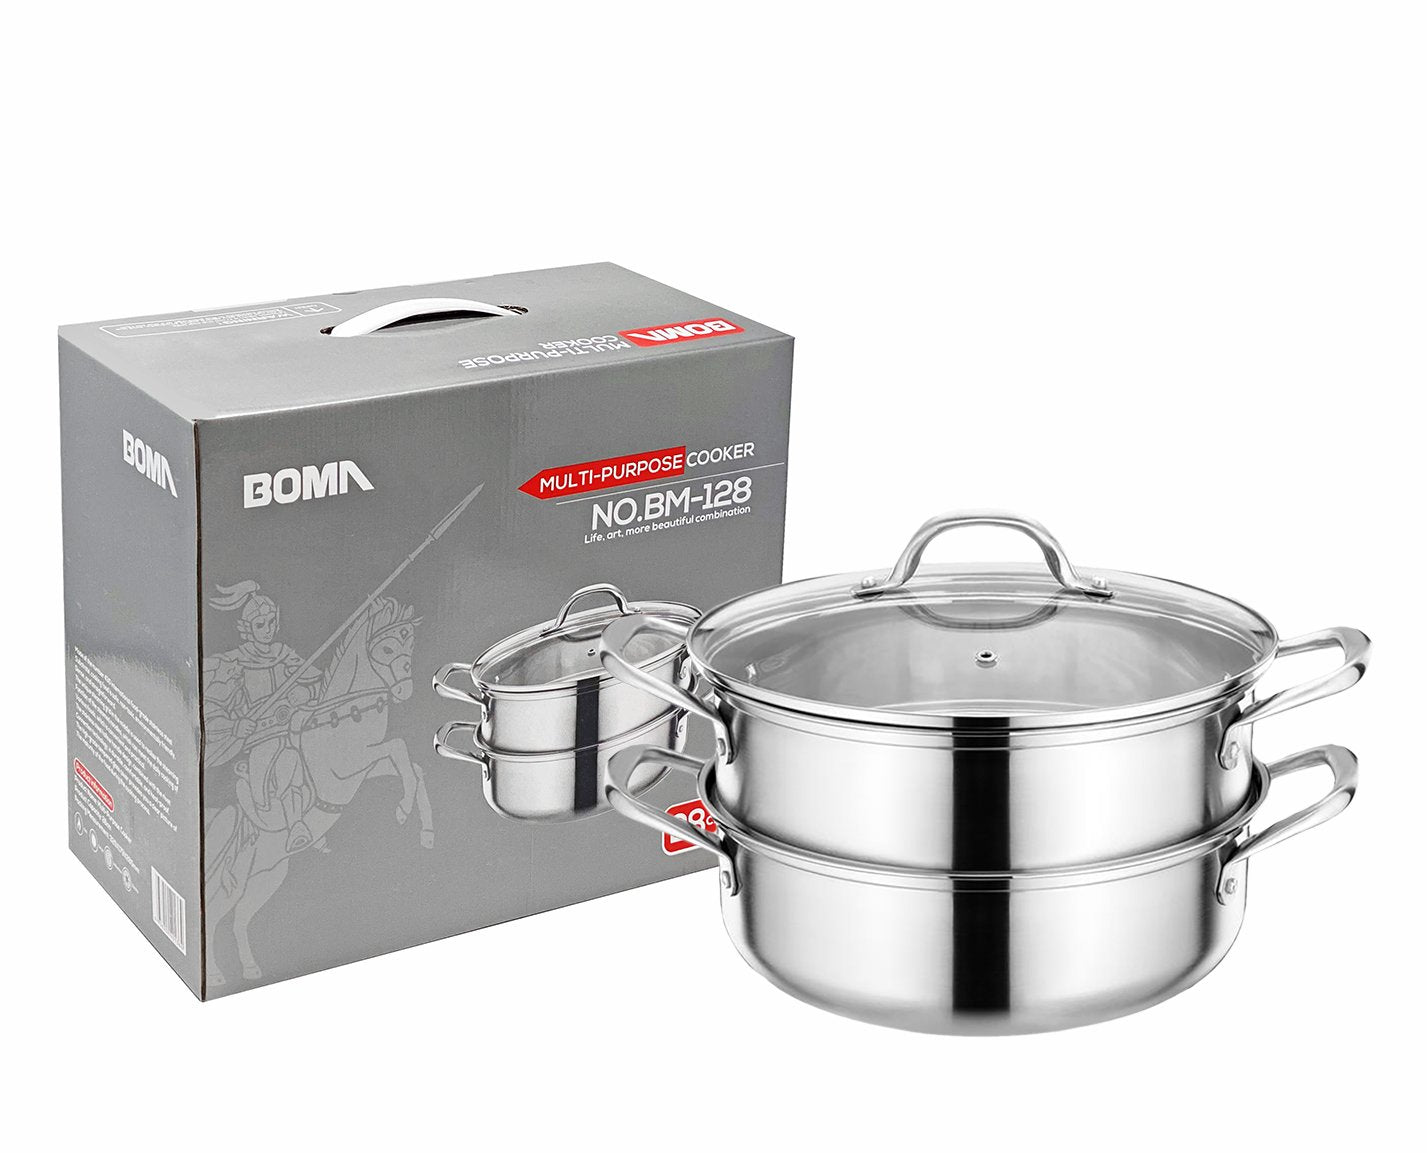 BOMA Stainless Steel 3-Piece 5.8-Quart 2-Tier Pasta/Steamer Set - Tempered Glass Lid, Dishwasher Safe